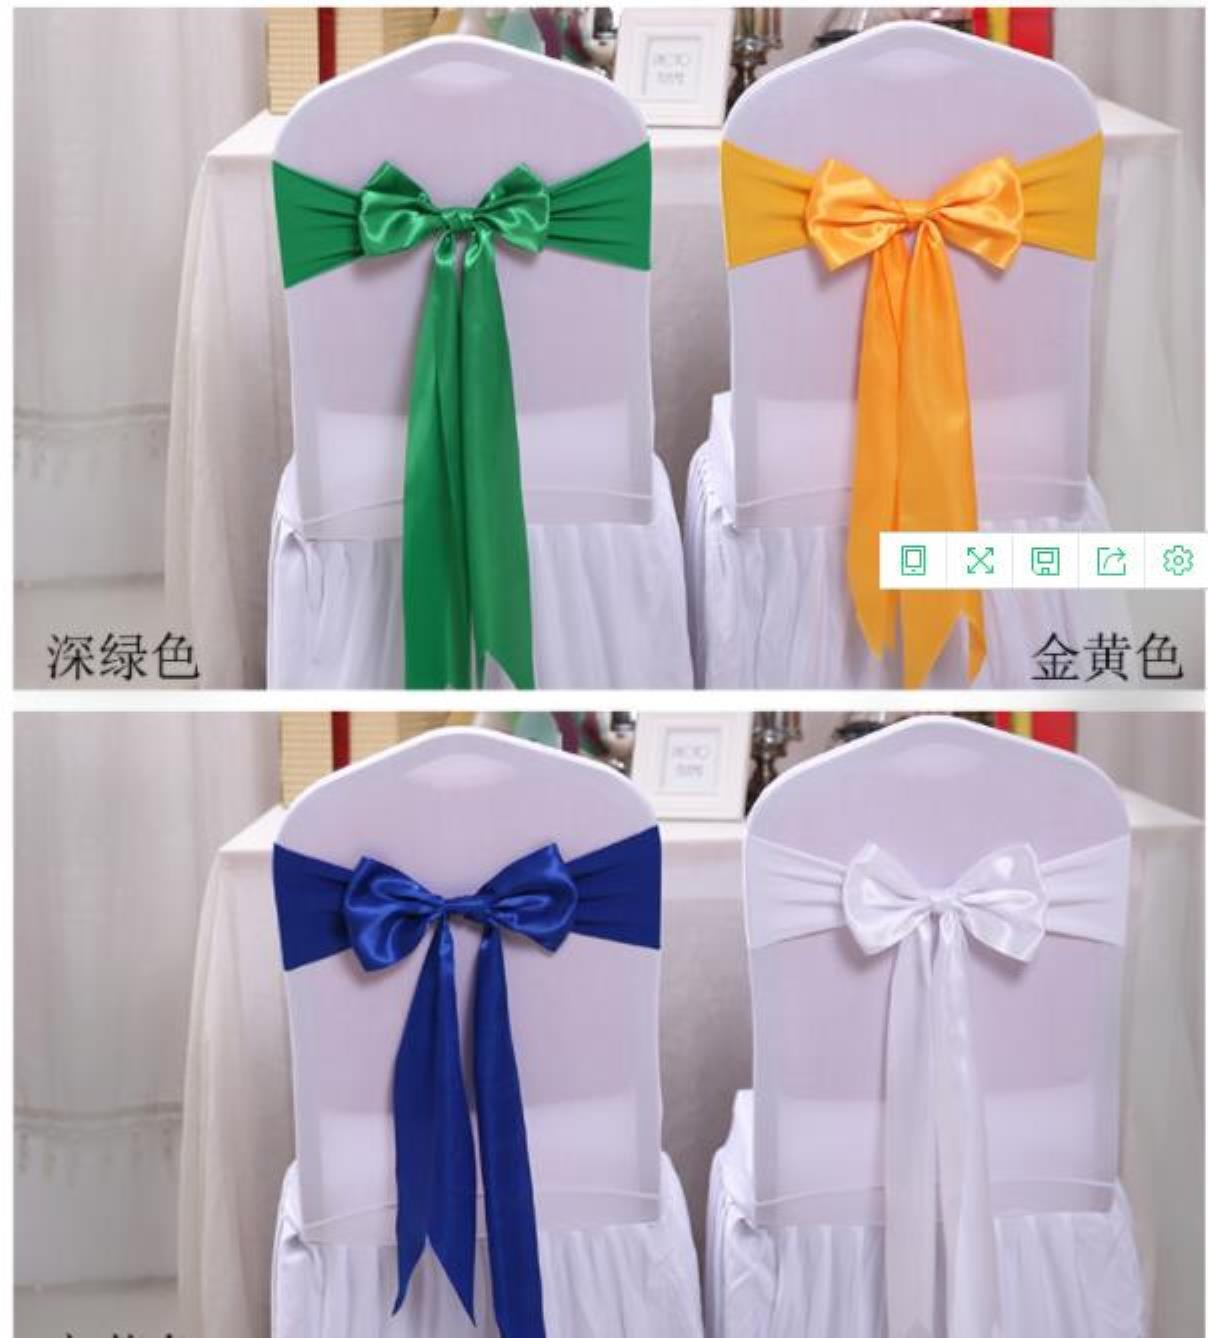 Ers Textiles Home & Garden25Pcs Wedding Decoration Knot Bow Sashes Satin Spandex Er Band Ribbons Chair Tie Backs For Party Banqu Jllkdk Drop